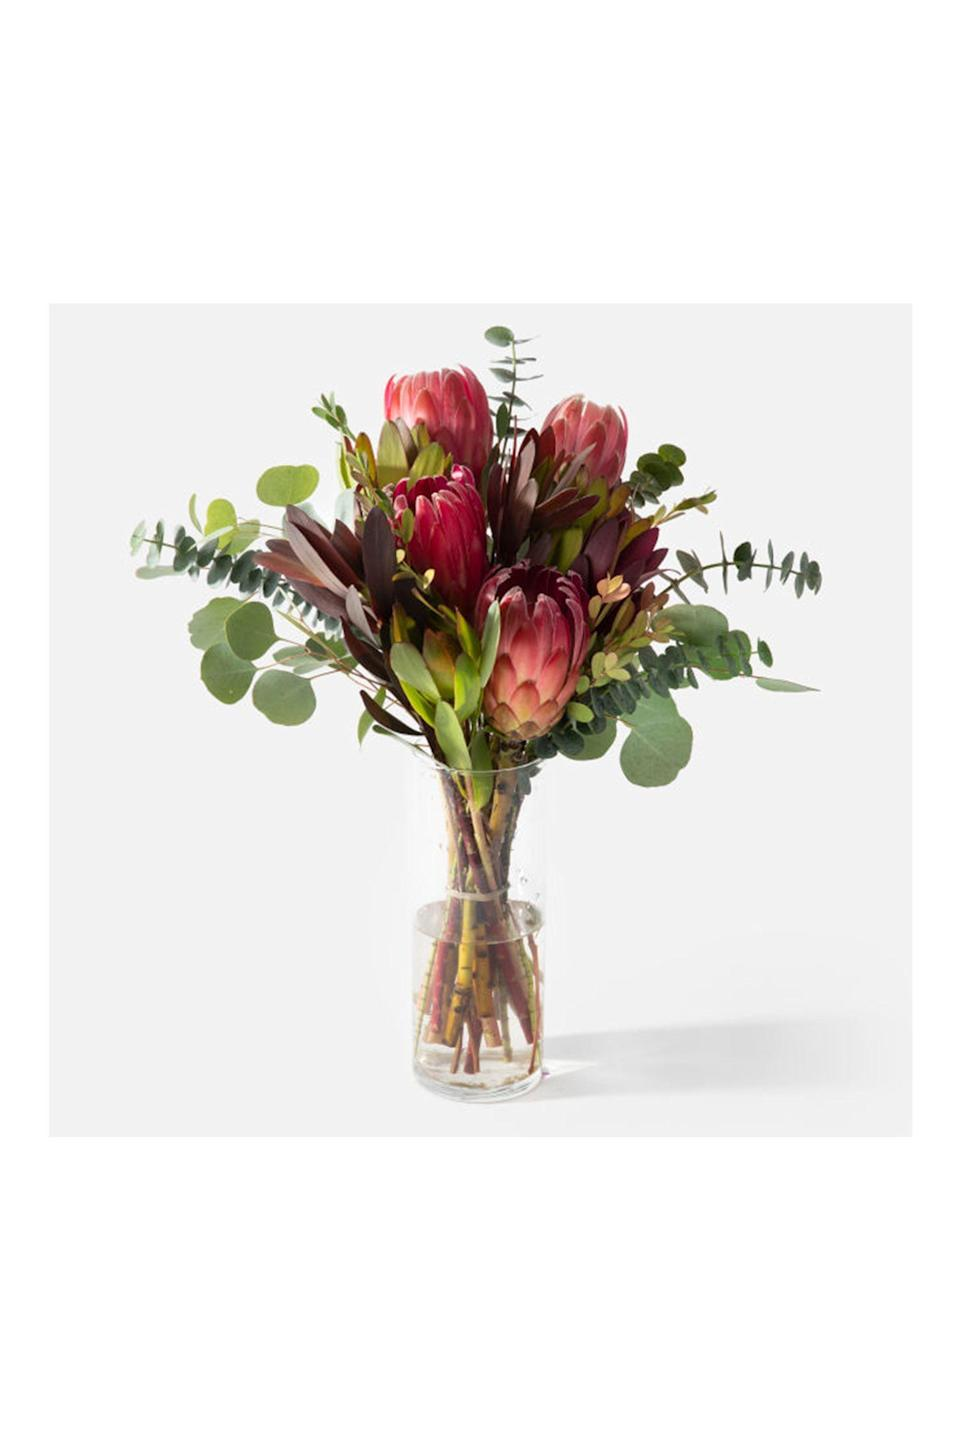 """<p><strong>Urbanstems</strong></p><p>urbanstems.com</p><p><strong>$55.00</strong></p><p><a href=""""https://go.redirectingat.com?id=74968X1596630&url=https%3A%2F%2Furbanstems.com%2Fproducts%2Fflowers%2Fthe-catalina%2FFLRL-B-00170.html&sref=https%3A%2F%2Fwww.redbookmag.com%2Flife%2Fg35152525%2Fbest-flower-delivery-service%2F"""" rel=""""nofollow noopener"""" target=""""_blank"""" data-ylk=""""slk:Shop Now"""" class=""""link rapid-noclick-resp"""">Shop Now</a></p><p>Looking for modern bouquet designs and on-trend plants with nationwide delivery? <a href=""""https://go.redirectingat.com?id=74968X1596630&url=https%3A%2F%2Furbanstems.com%2F&sref=https%3A%2F%2Fwww.redbookmag.com%2Flife%2Fg35152525%2Fbest-flower-delivery-service%2F"""" rel=""""nofollow noopener"""" target=""""_blank"""" data-ylk=""""slk:UrbanStems"""" class=""""link rapid-noclick-resp"""">UrbanStems</a> is your best bet. UrbanStems also offers a subscription service so the goodness of spreading flower and plant cheer is on constant rotation.</p>"""